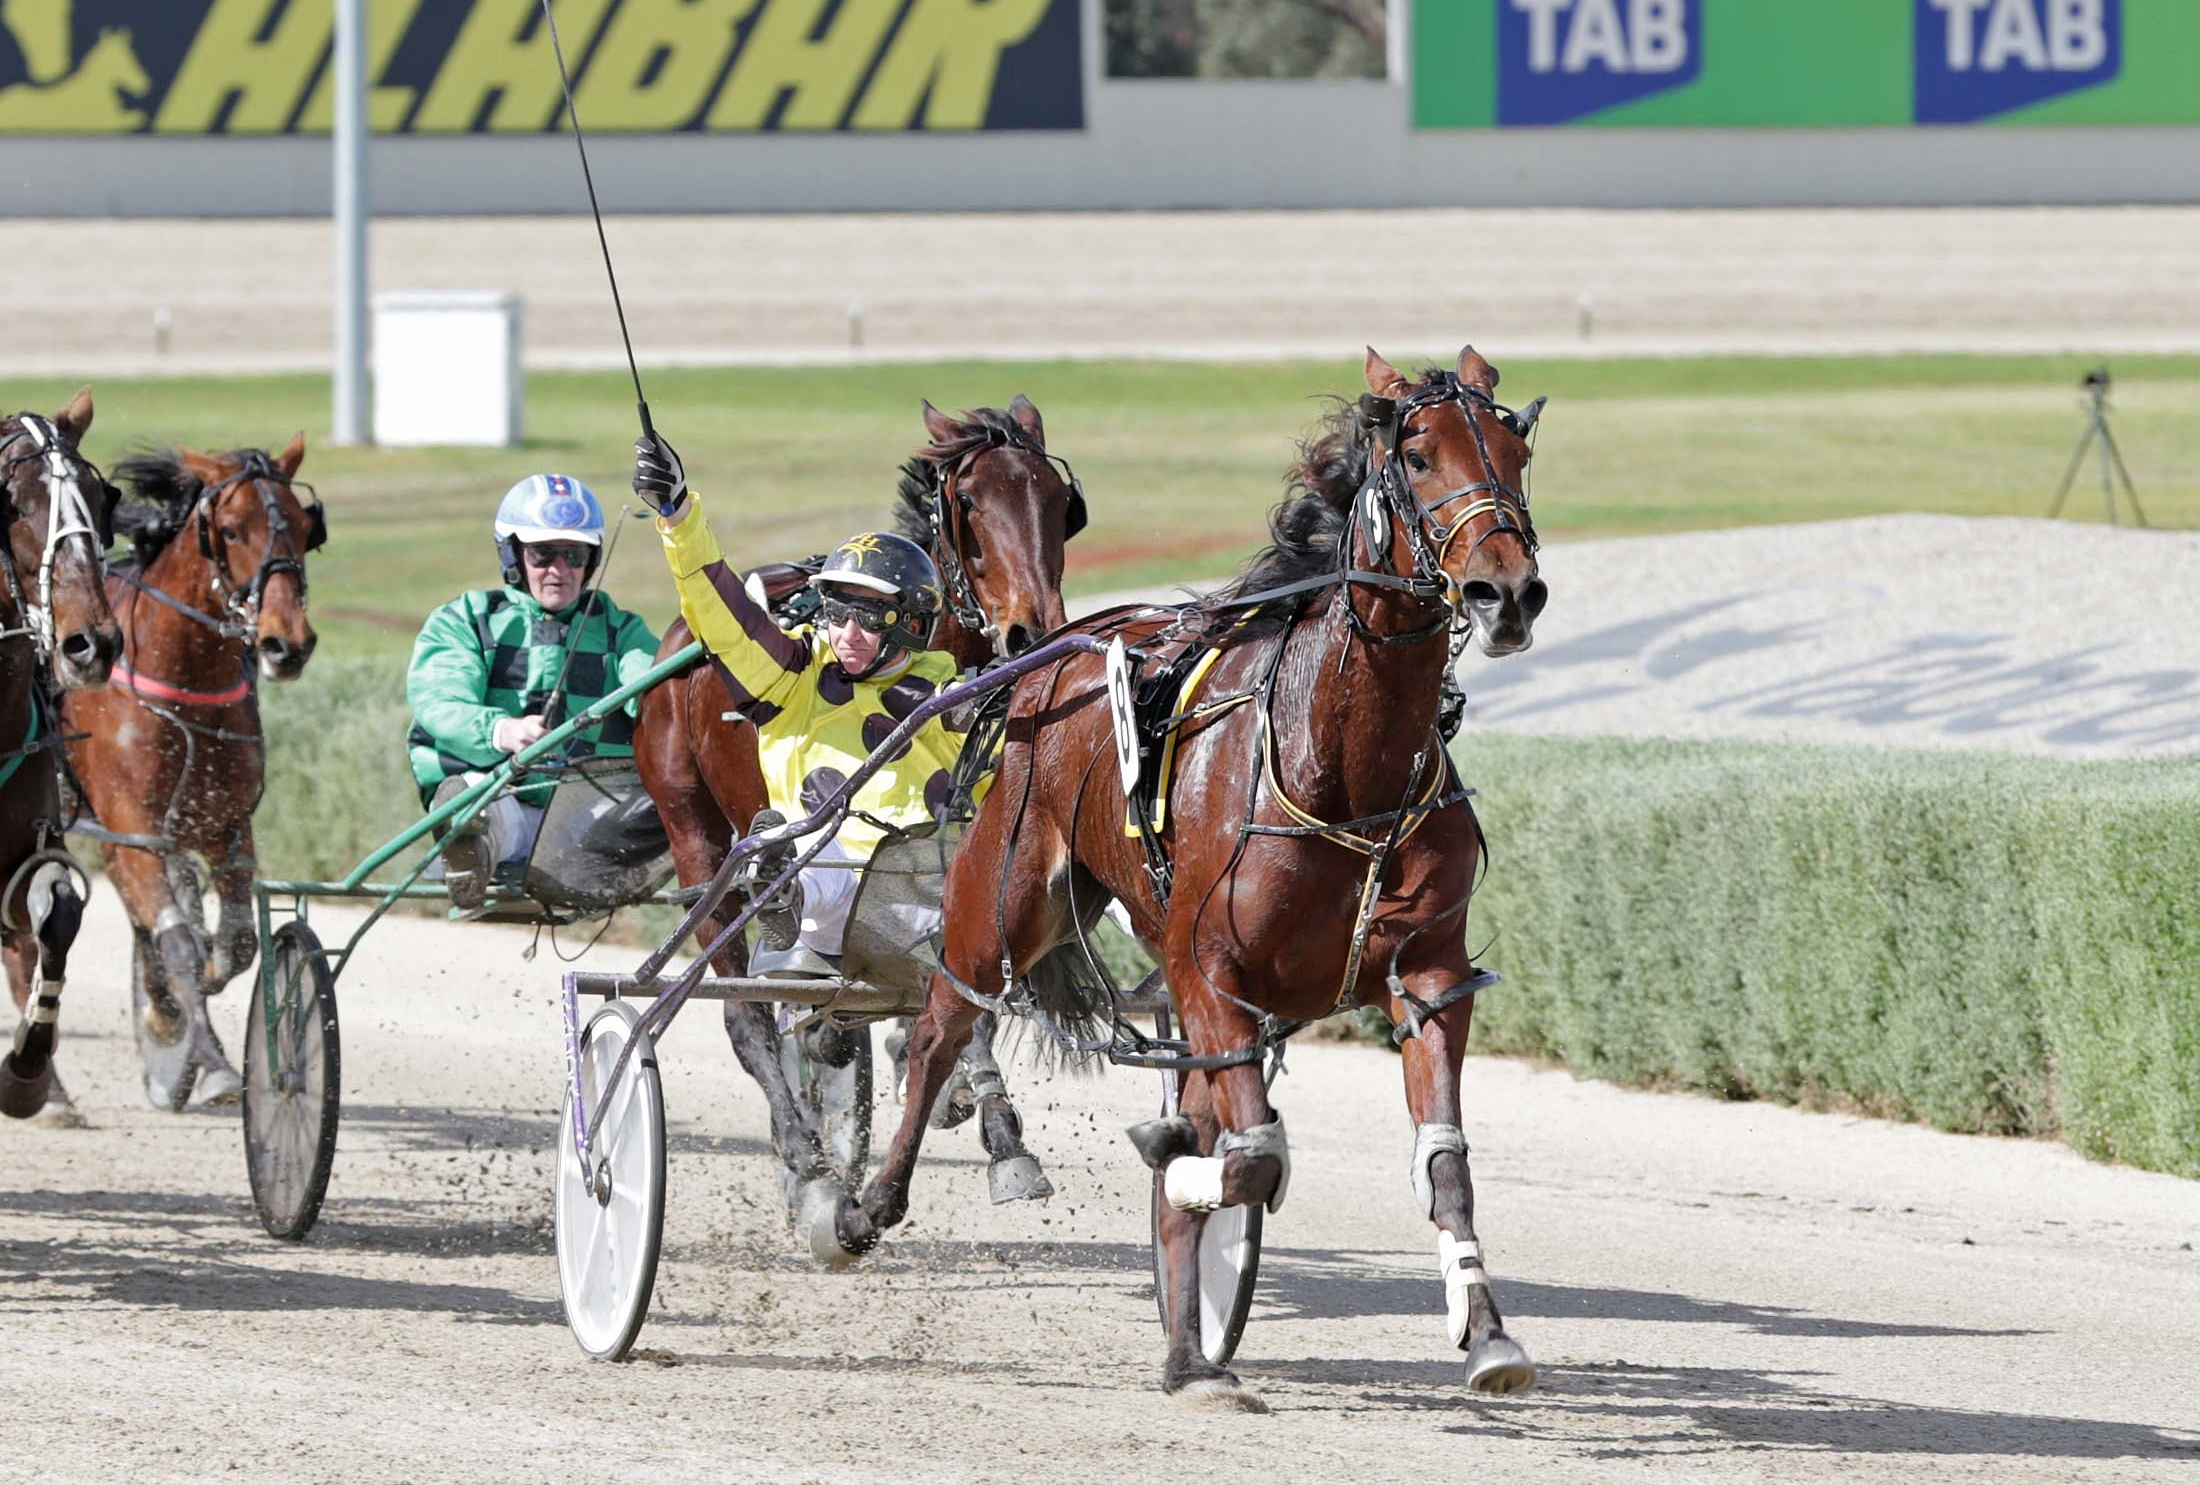 Image courtesy National Trotguide - Bruce enjoyed this win on Frith in the Breeders Crown 4YO Mares Final.